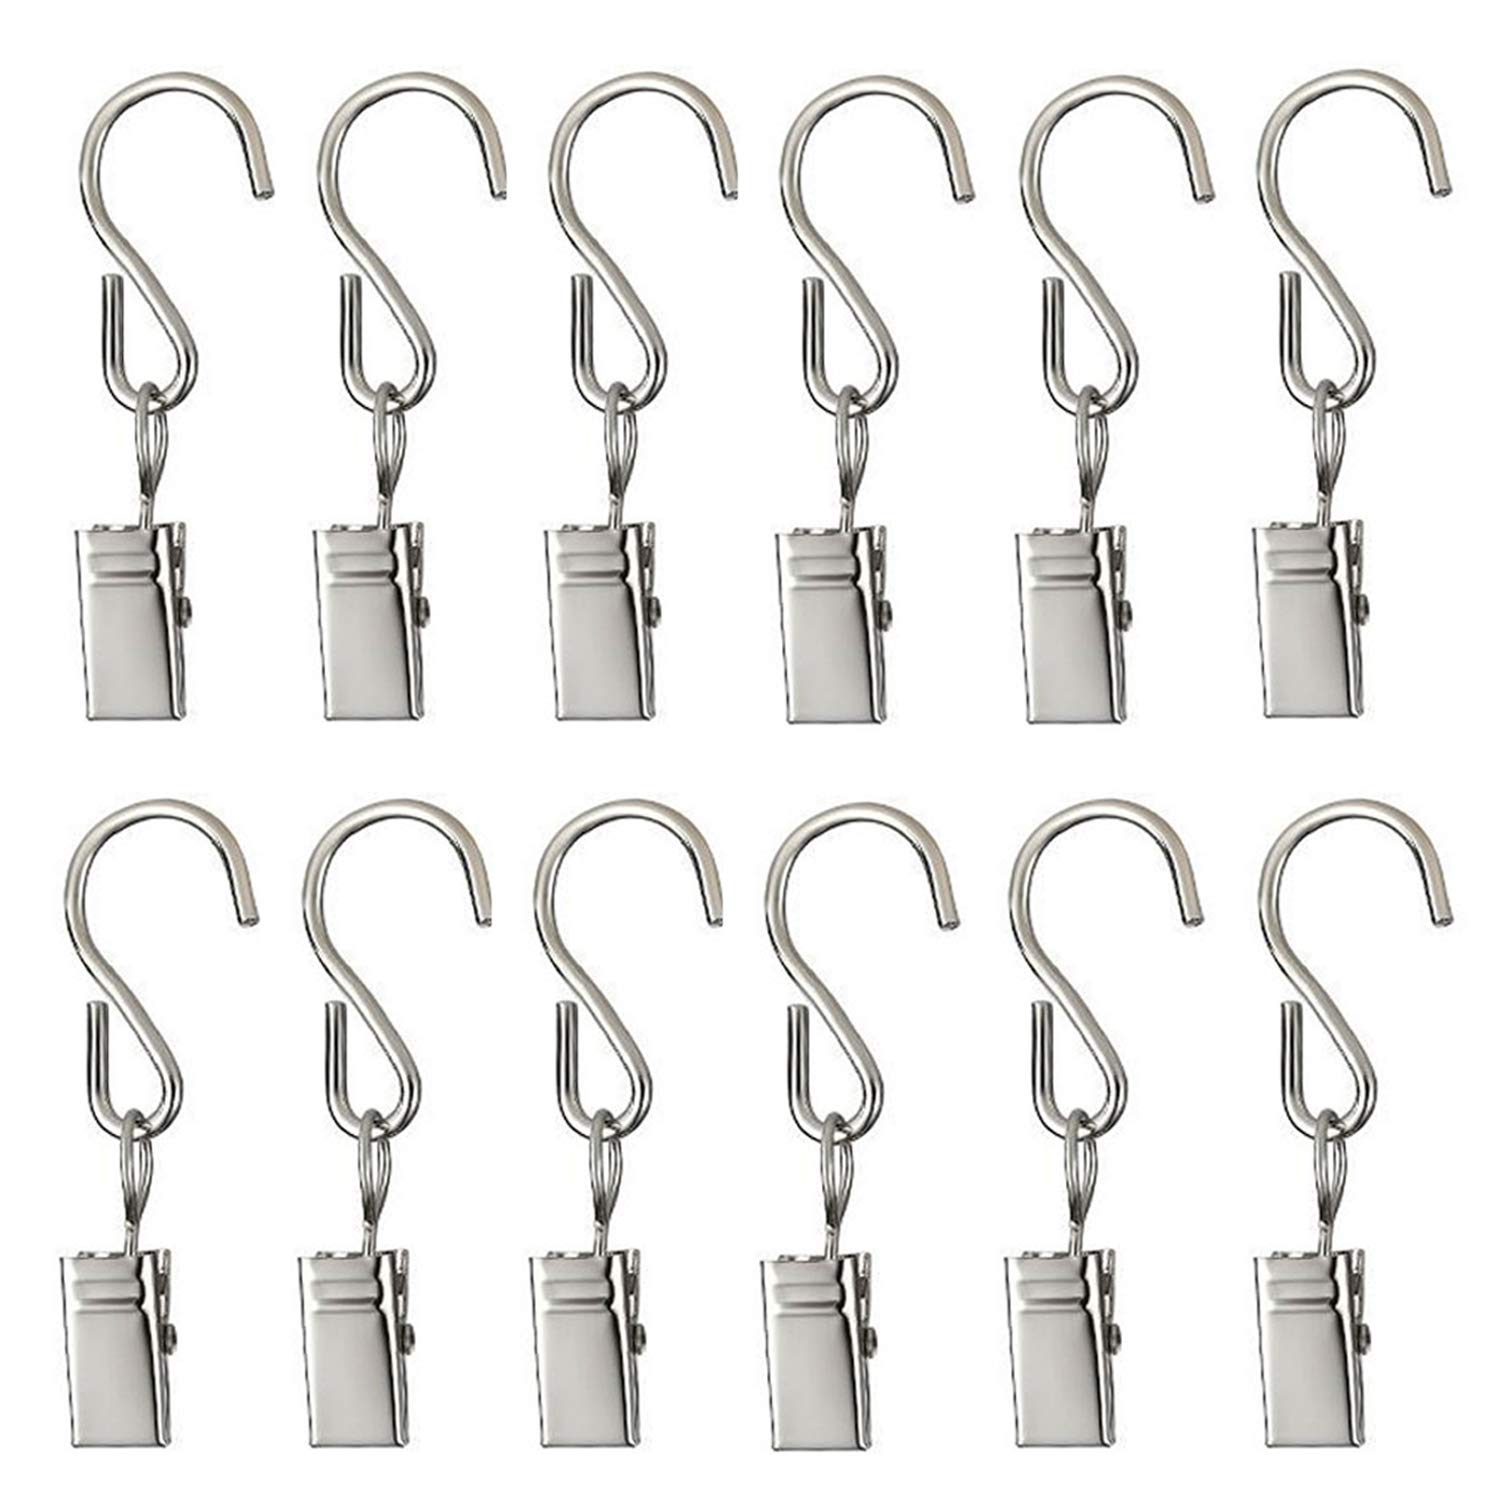 50PCS Curtain Clips with Hooks for Hanging Clamp Hangers Gutter Hooks for Party String Light Outdoor Wire Holders, Stainless Steel Silver